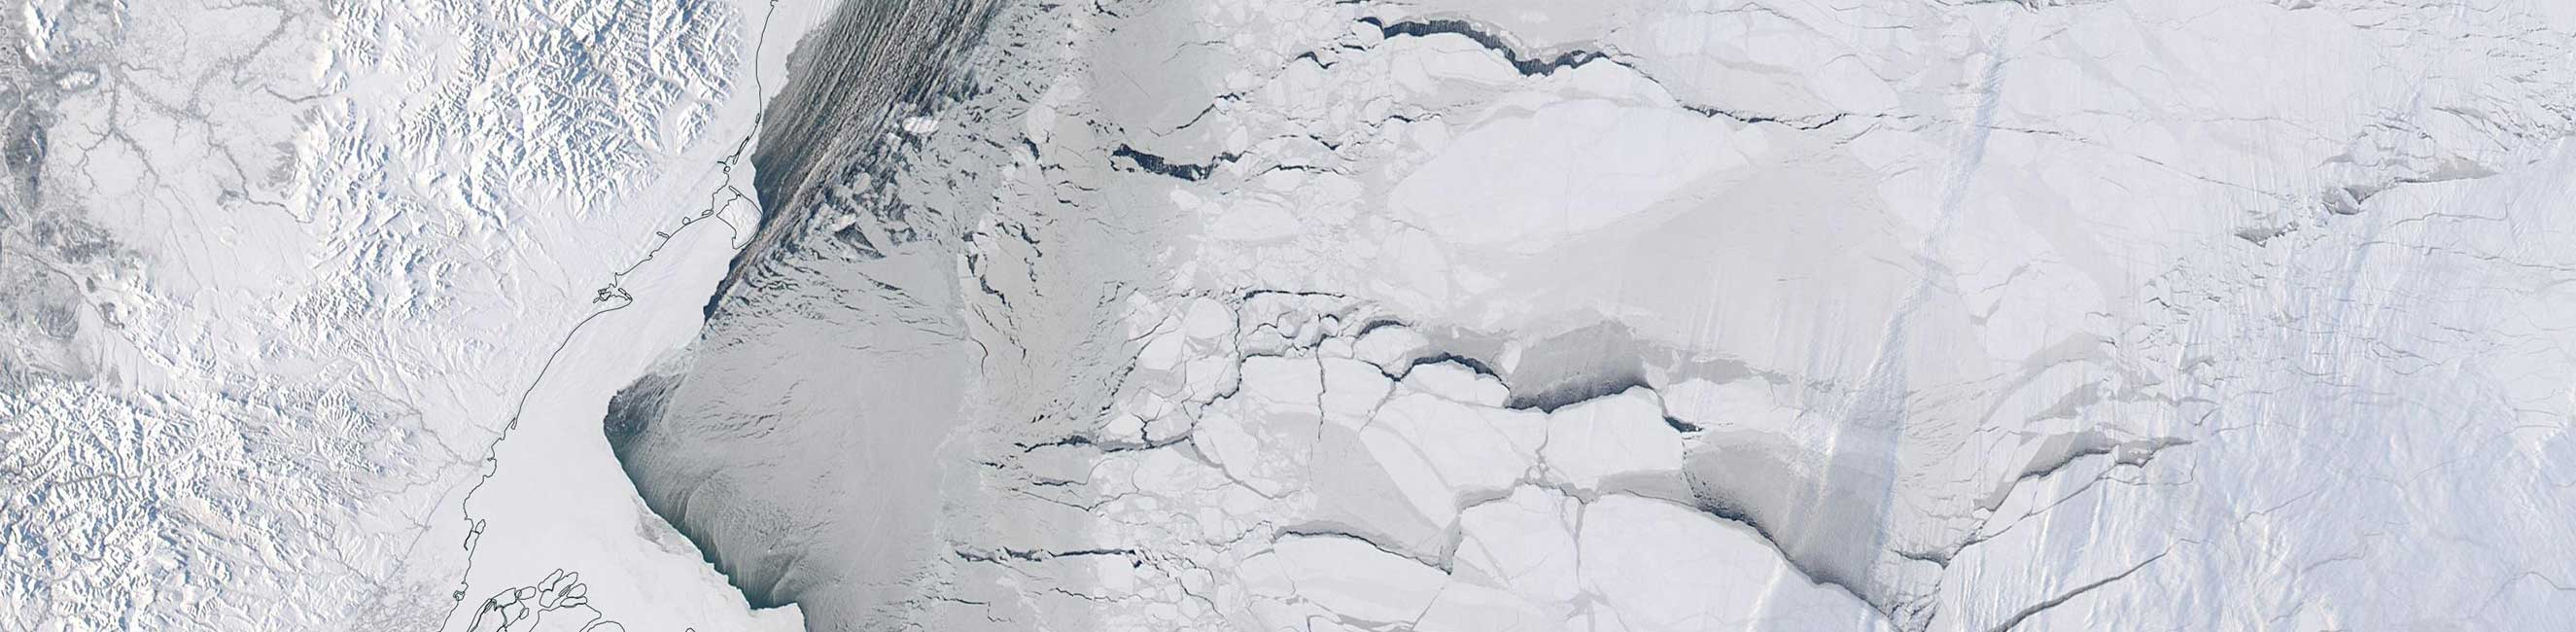 Sea Ice in the Beaufort Sea - feature grid